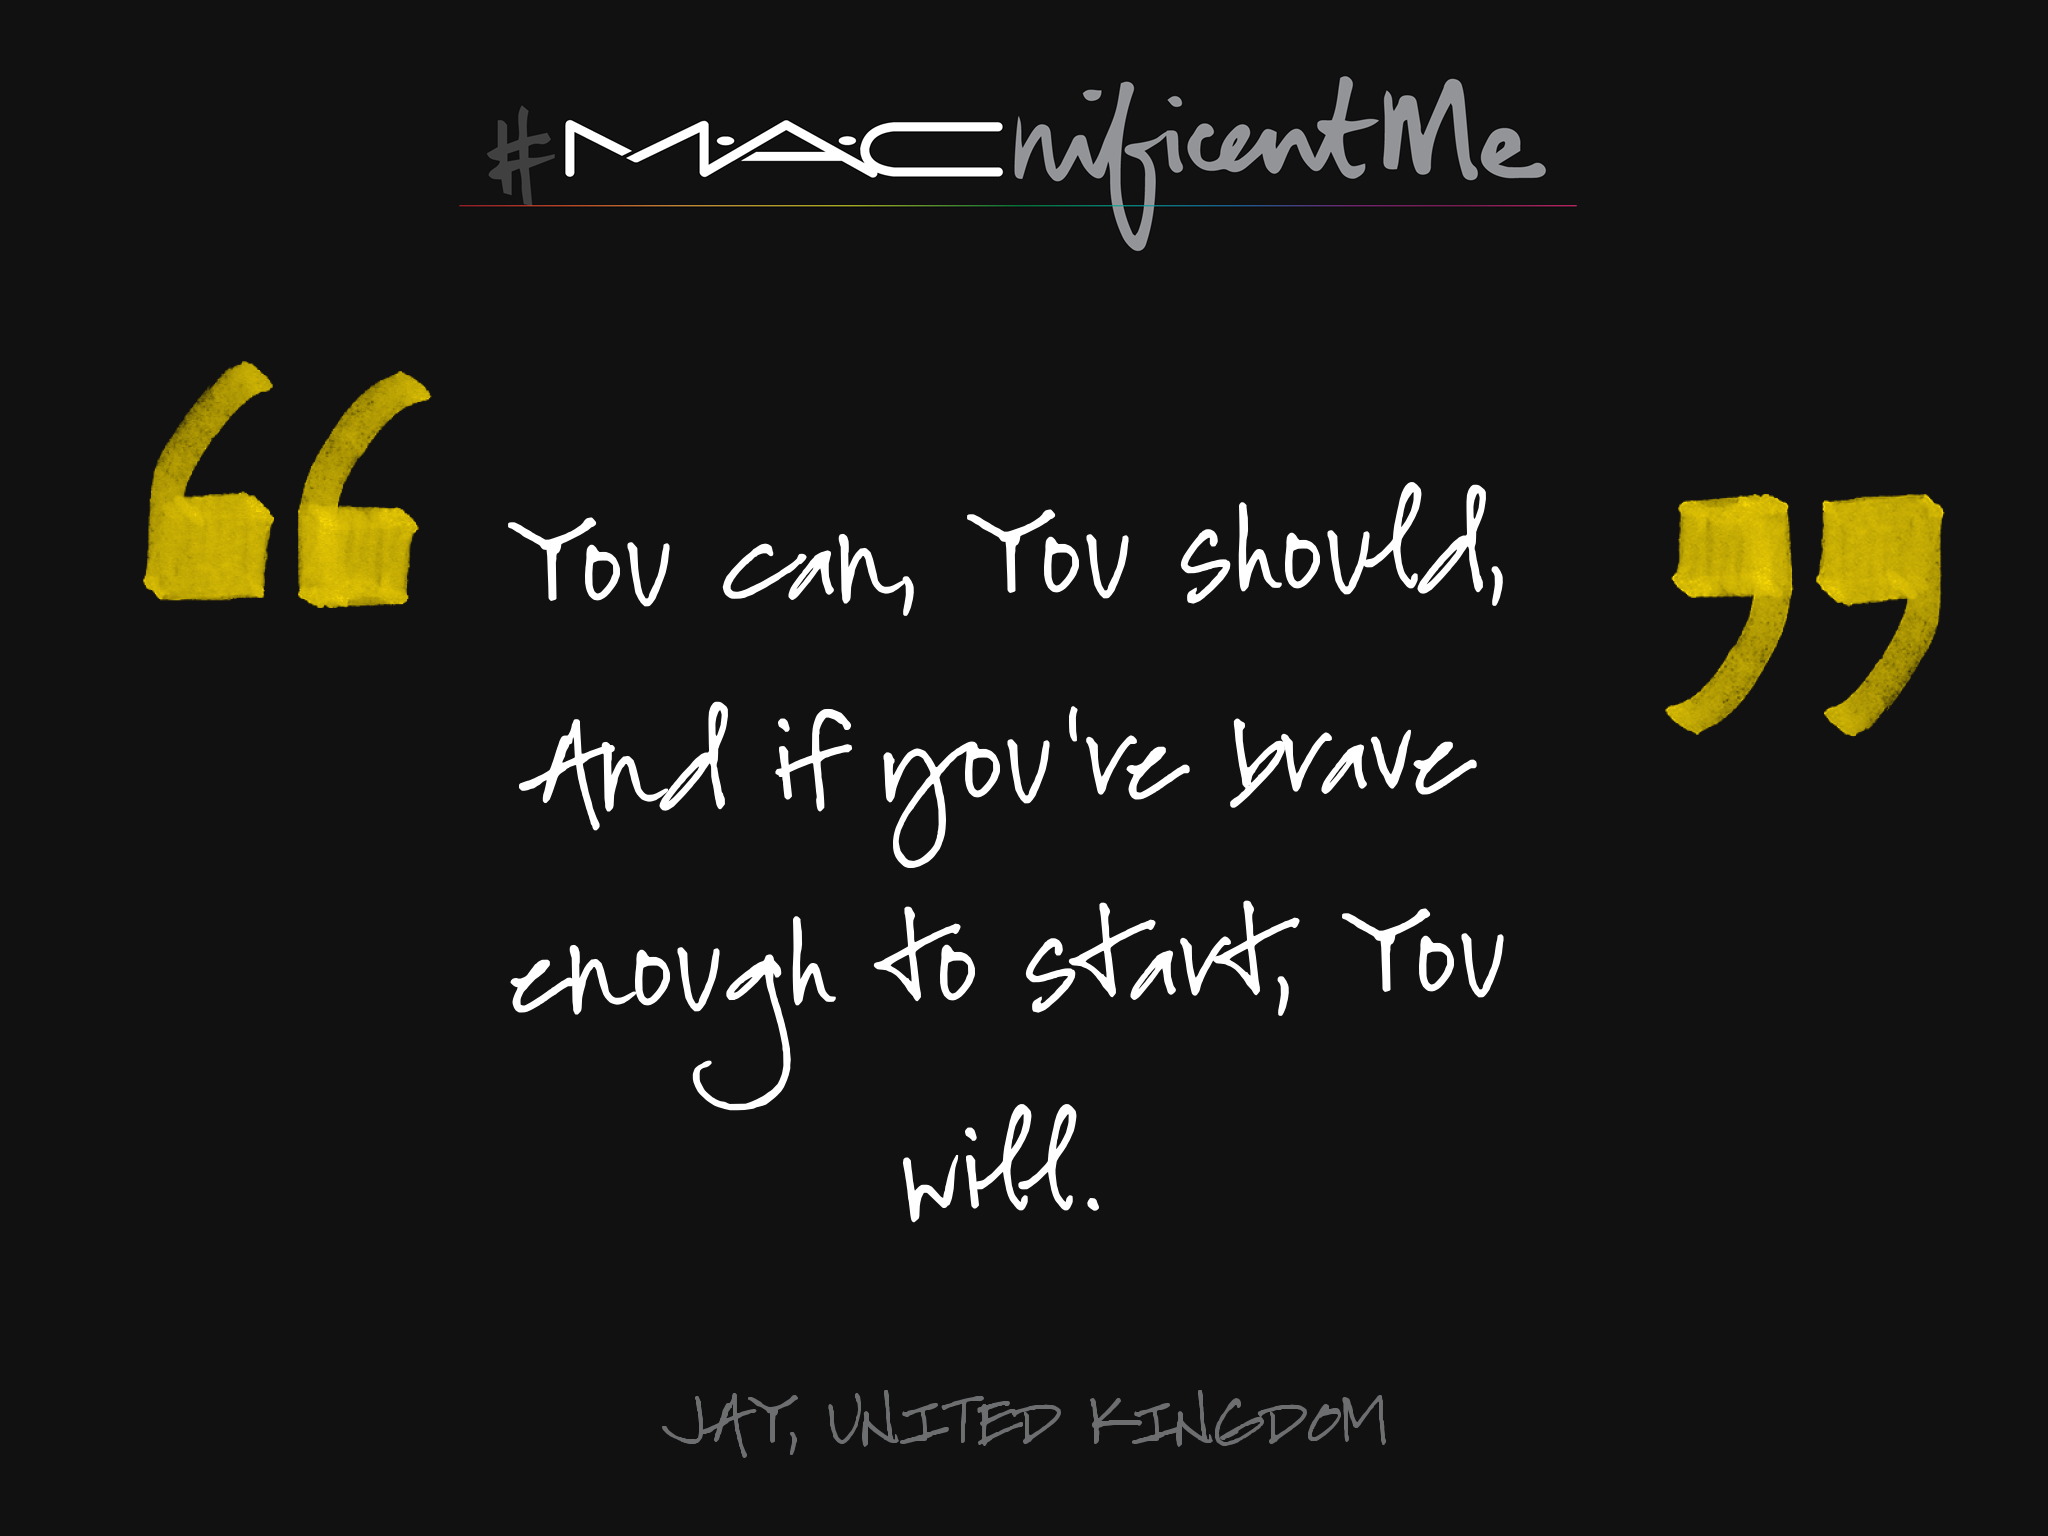 You could win a trip to NYC for a makeover and may become the face of M·A·Cnificent Me!